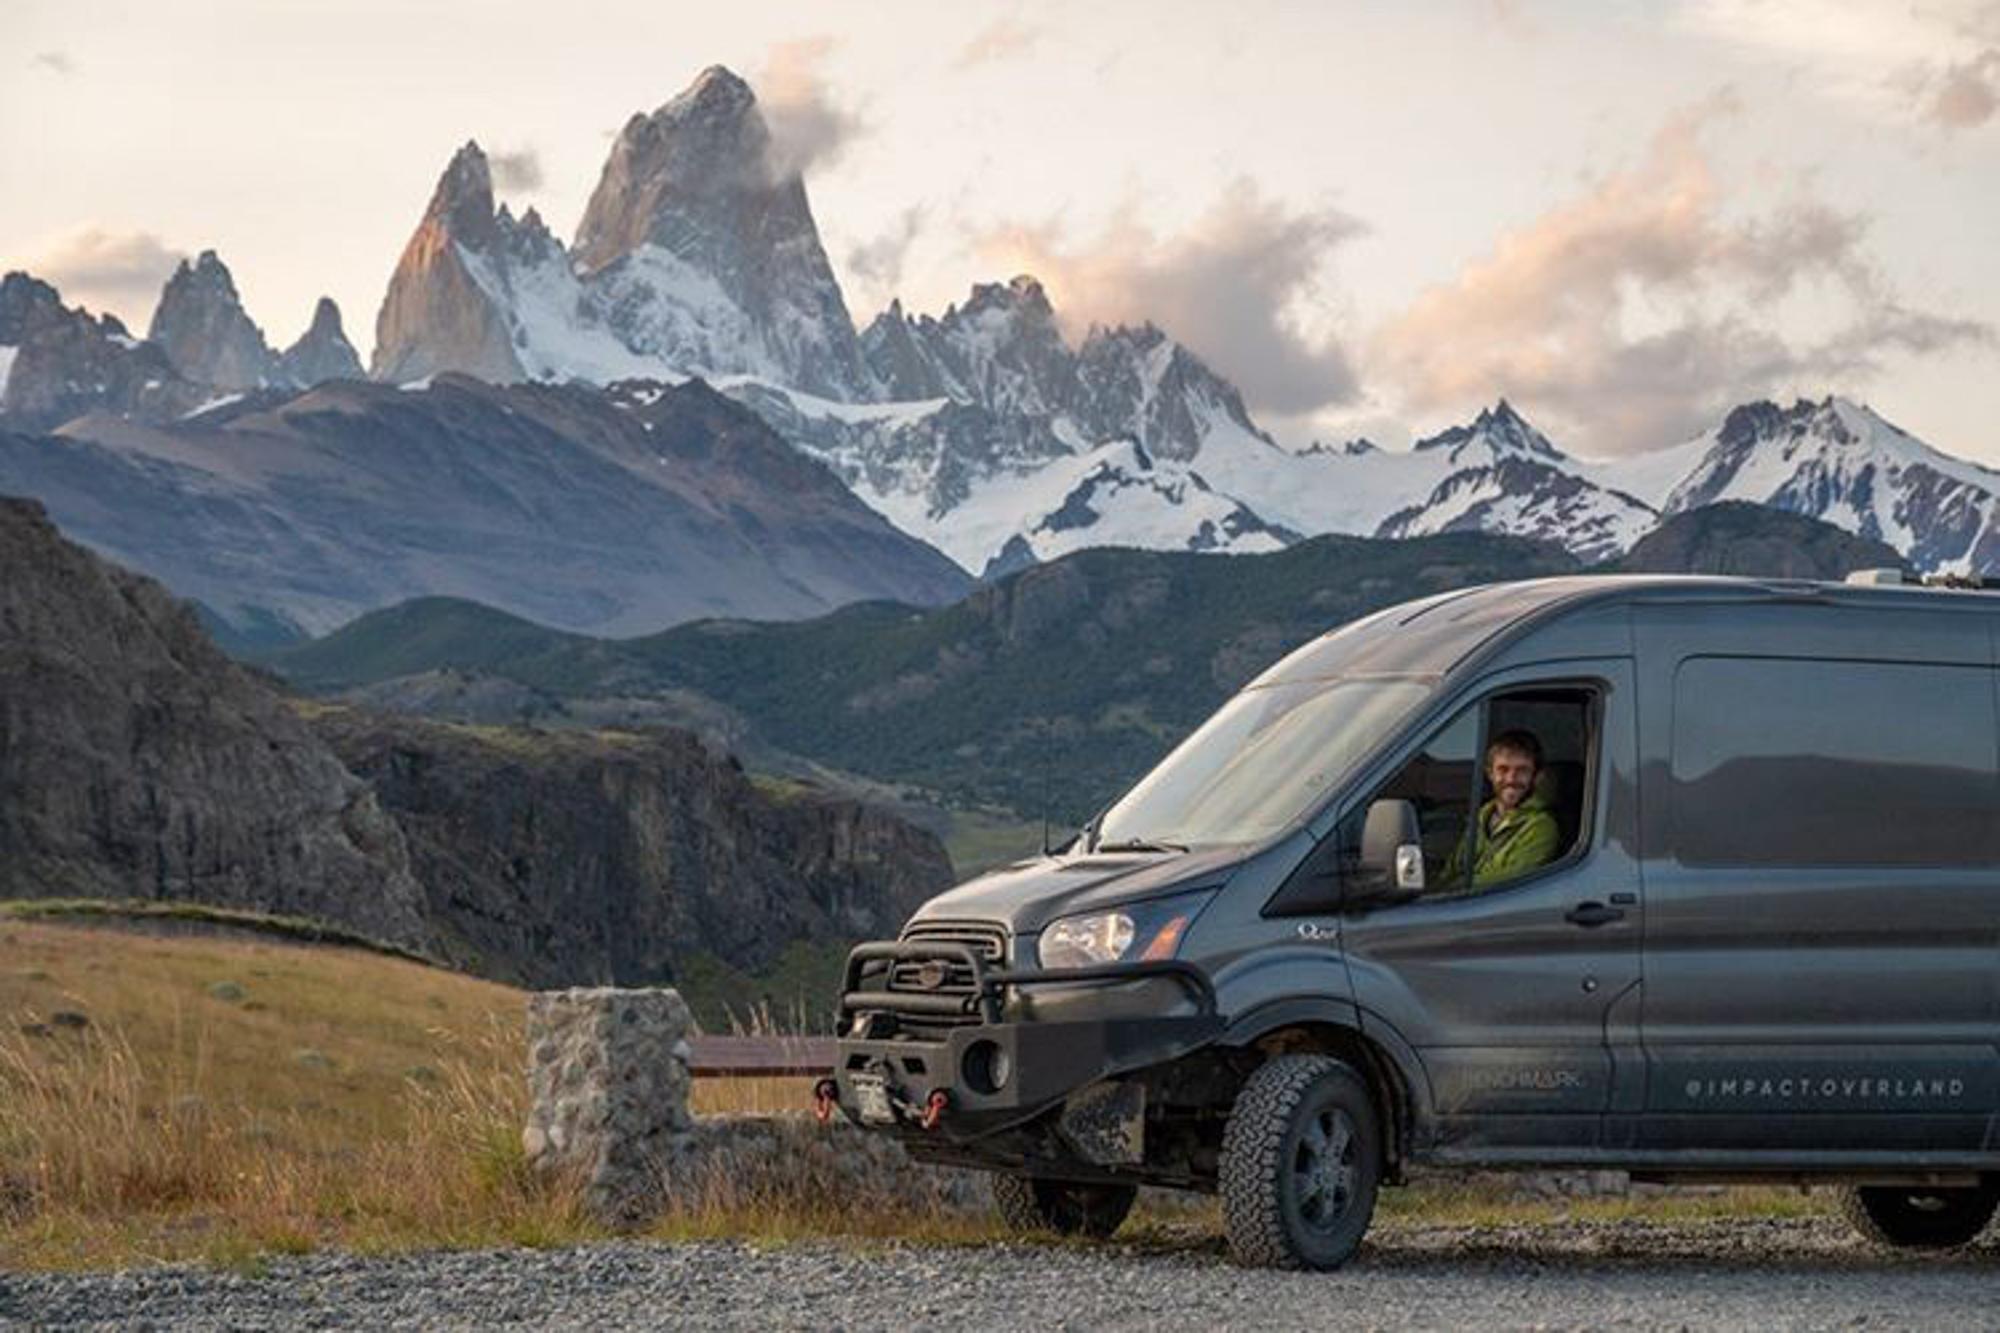 Overlanders Share Their Favorite Apps - Expedition Portal